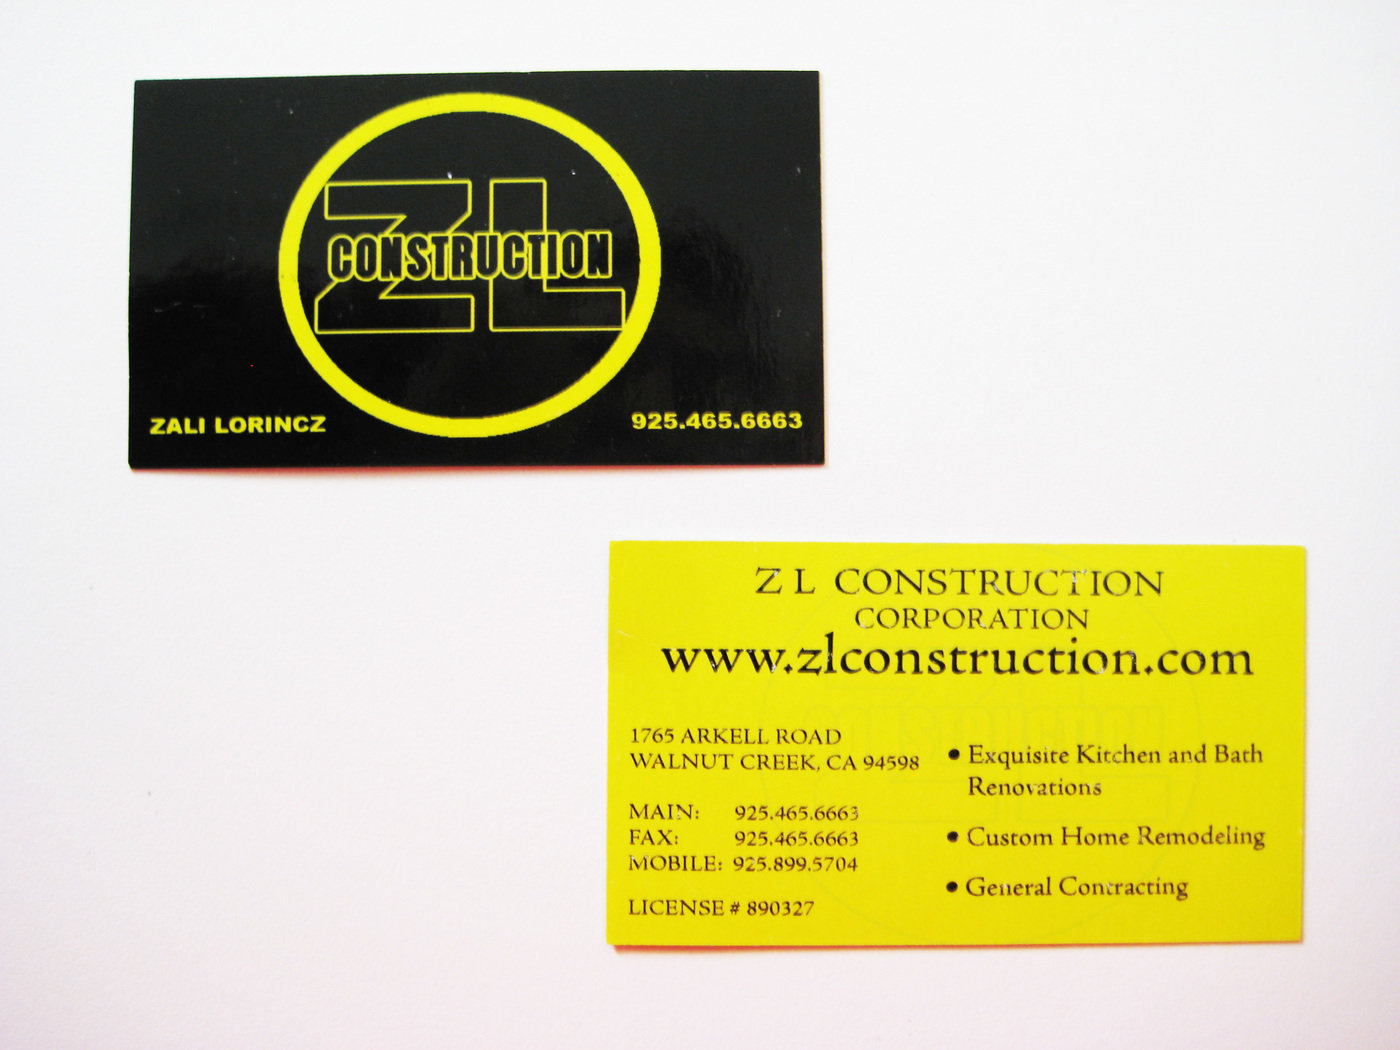 Business cards logos by jonathan niemuth at coroflot original zl construction business card this is the original design the client choose for his first run of business cards reheart Image collections